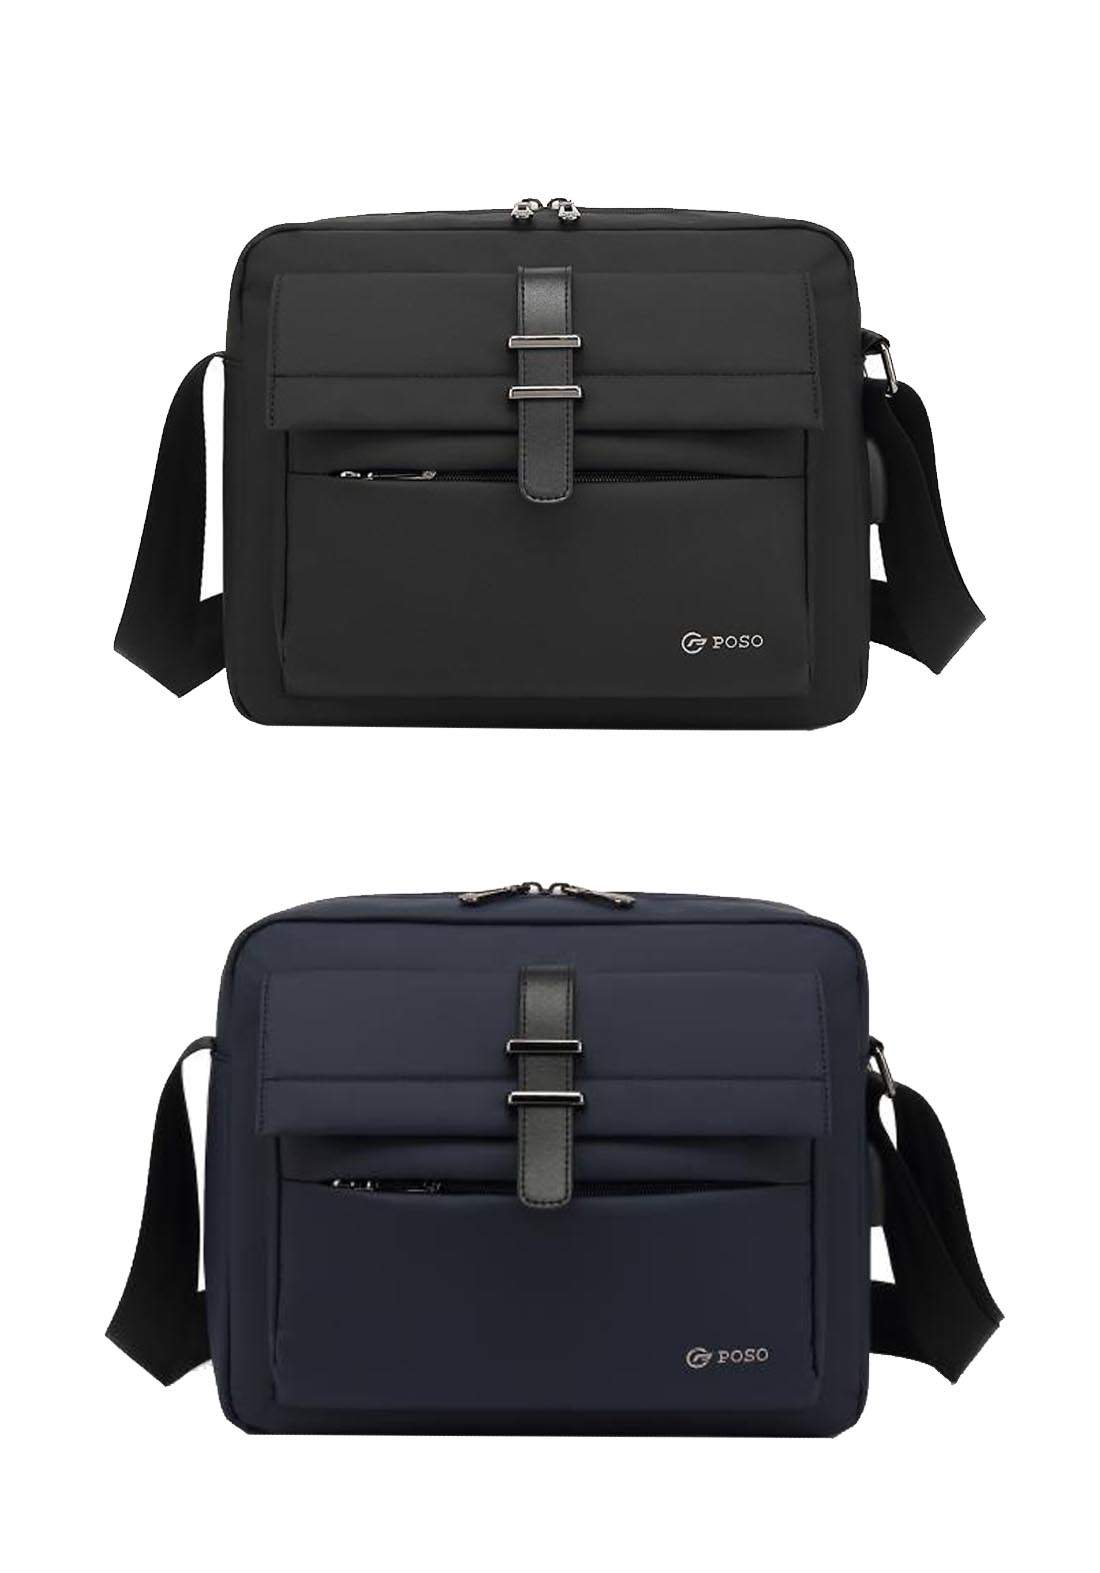 Poso PS875 Tablet Bag 10 inch With USB Port حقيبة ايباد